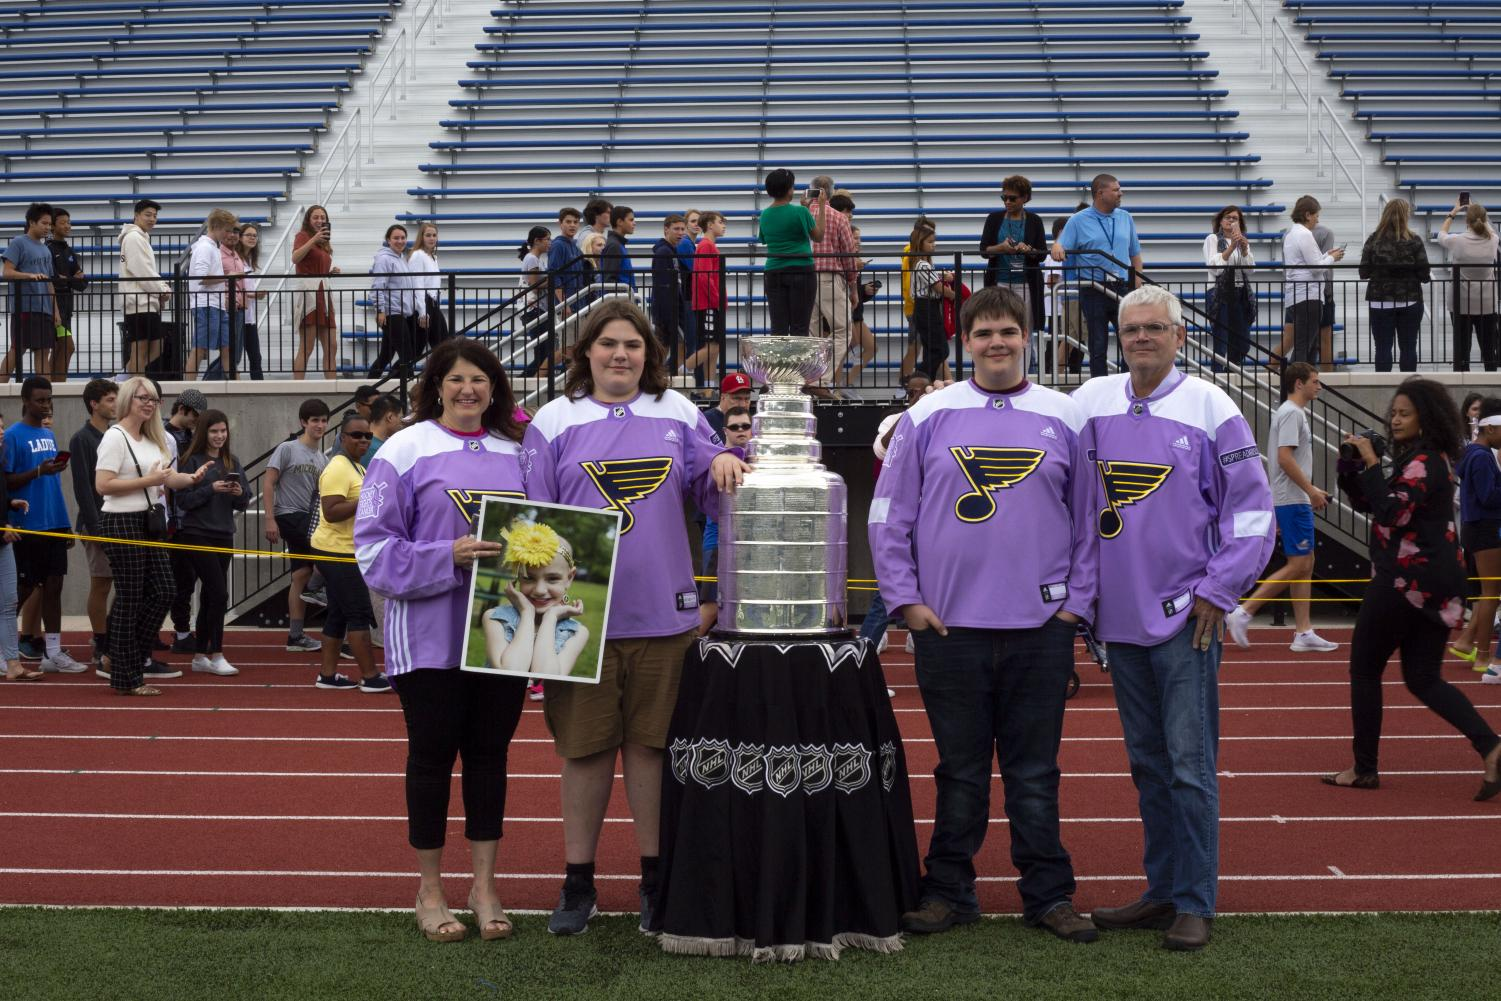 The Dougan family poses with the Stanley Cup on Ladue High School's football field Oct. 3. The Stanley Cup was brought to Ladue as a surprise for the Dougans to honor their sister, Ari Dougan, who passed away nearly two years ago.